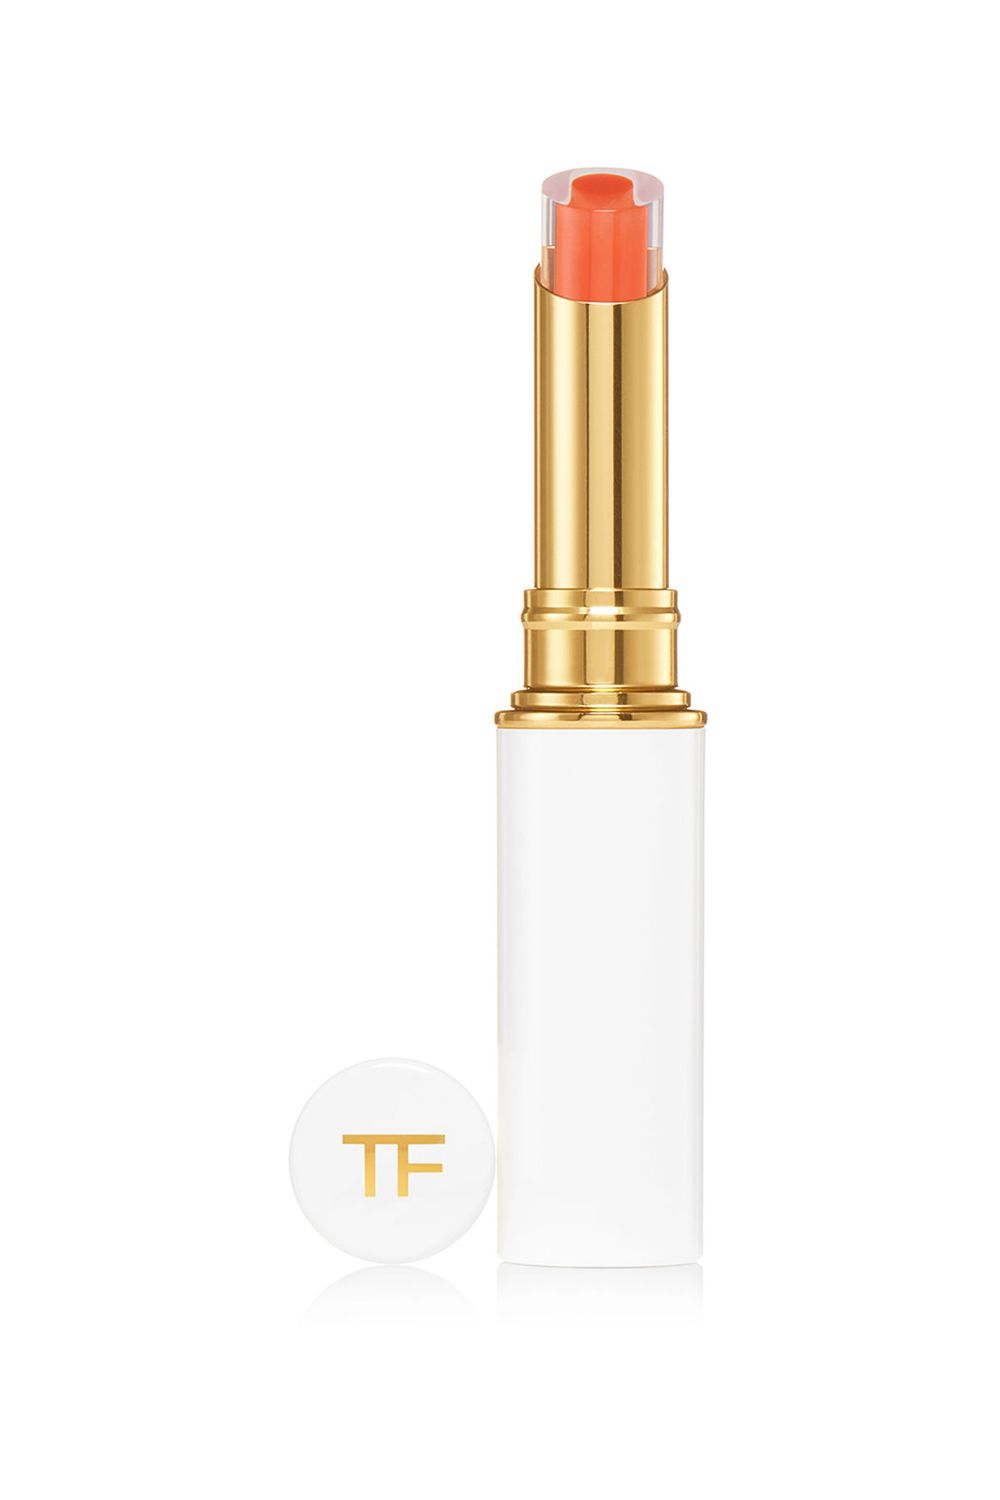 Fiery Apricot Tom Ford Lip Gelée in Scorching, $55 SHOP IT In one swipe, this cushiony texture will give your lips a healthy-looking glow. The tint offers sheer, buildable coverage if you're looking for more of a flesh-toned finish.